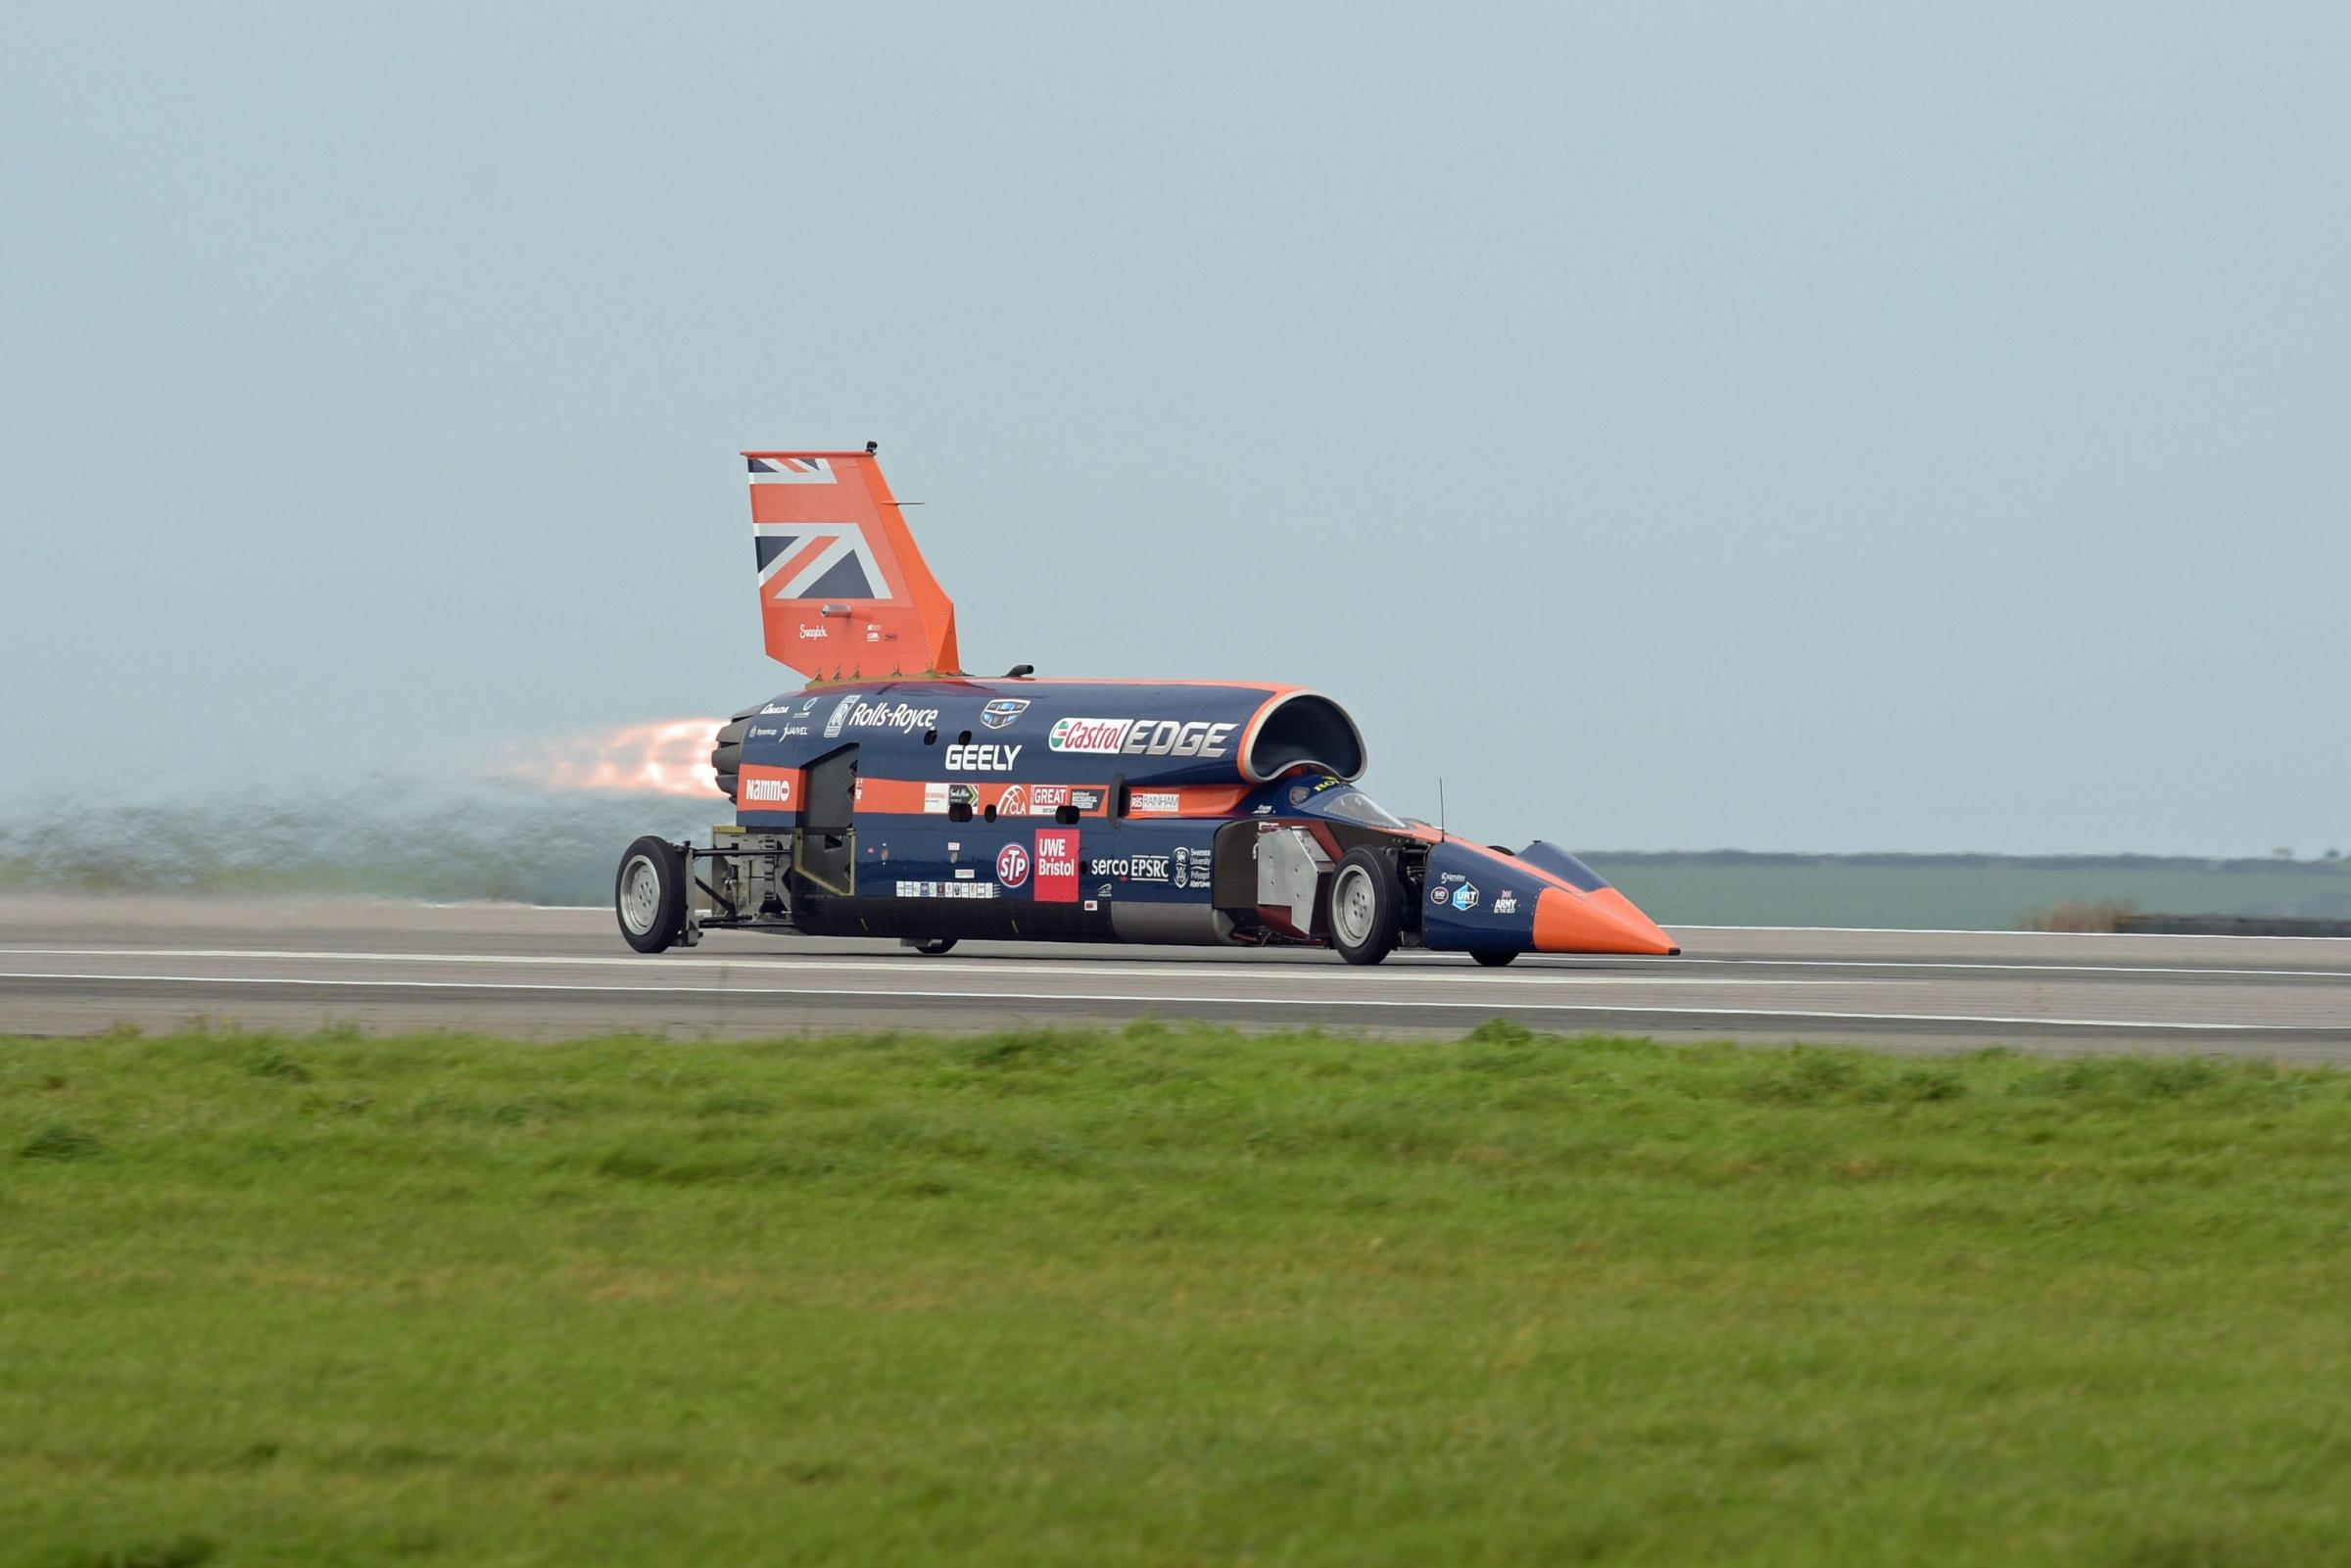 The Bloodhound 1,000mph supersonic racing car during its first public run at Cornwall Airport, near Newquay (Ben Birchall/PA)